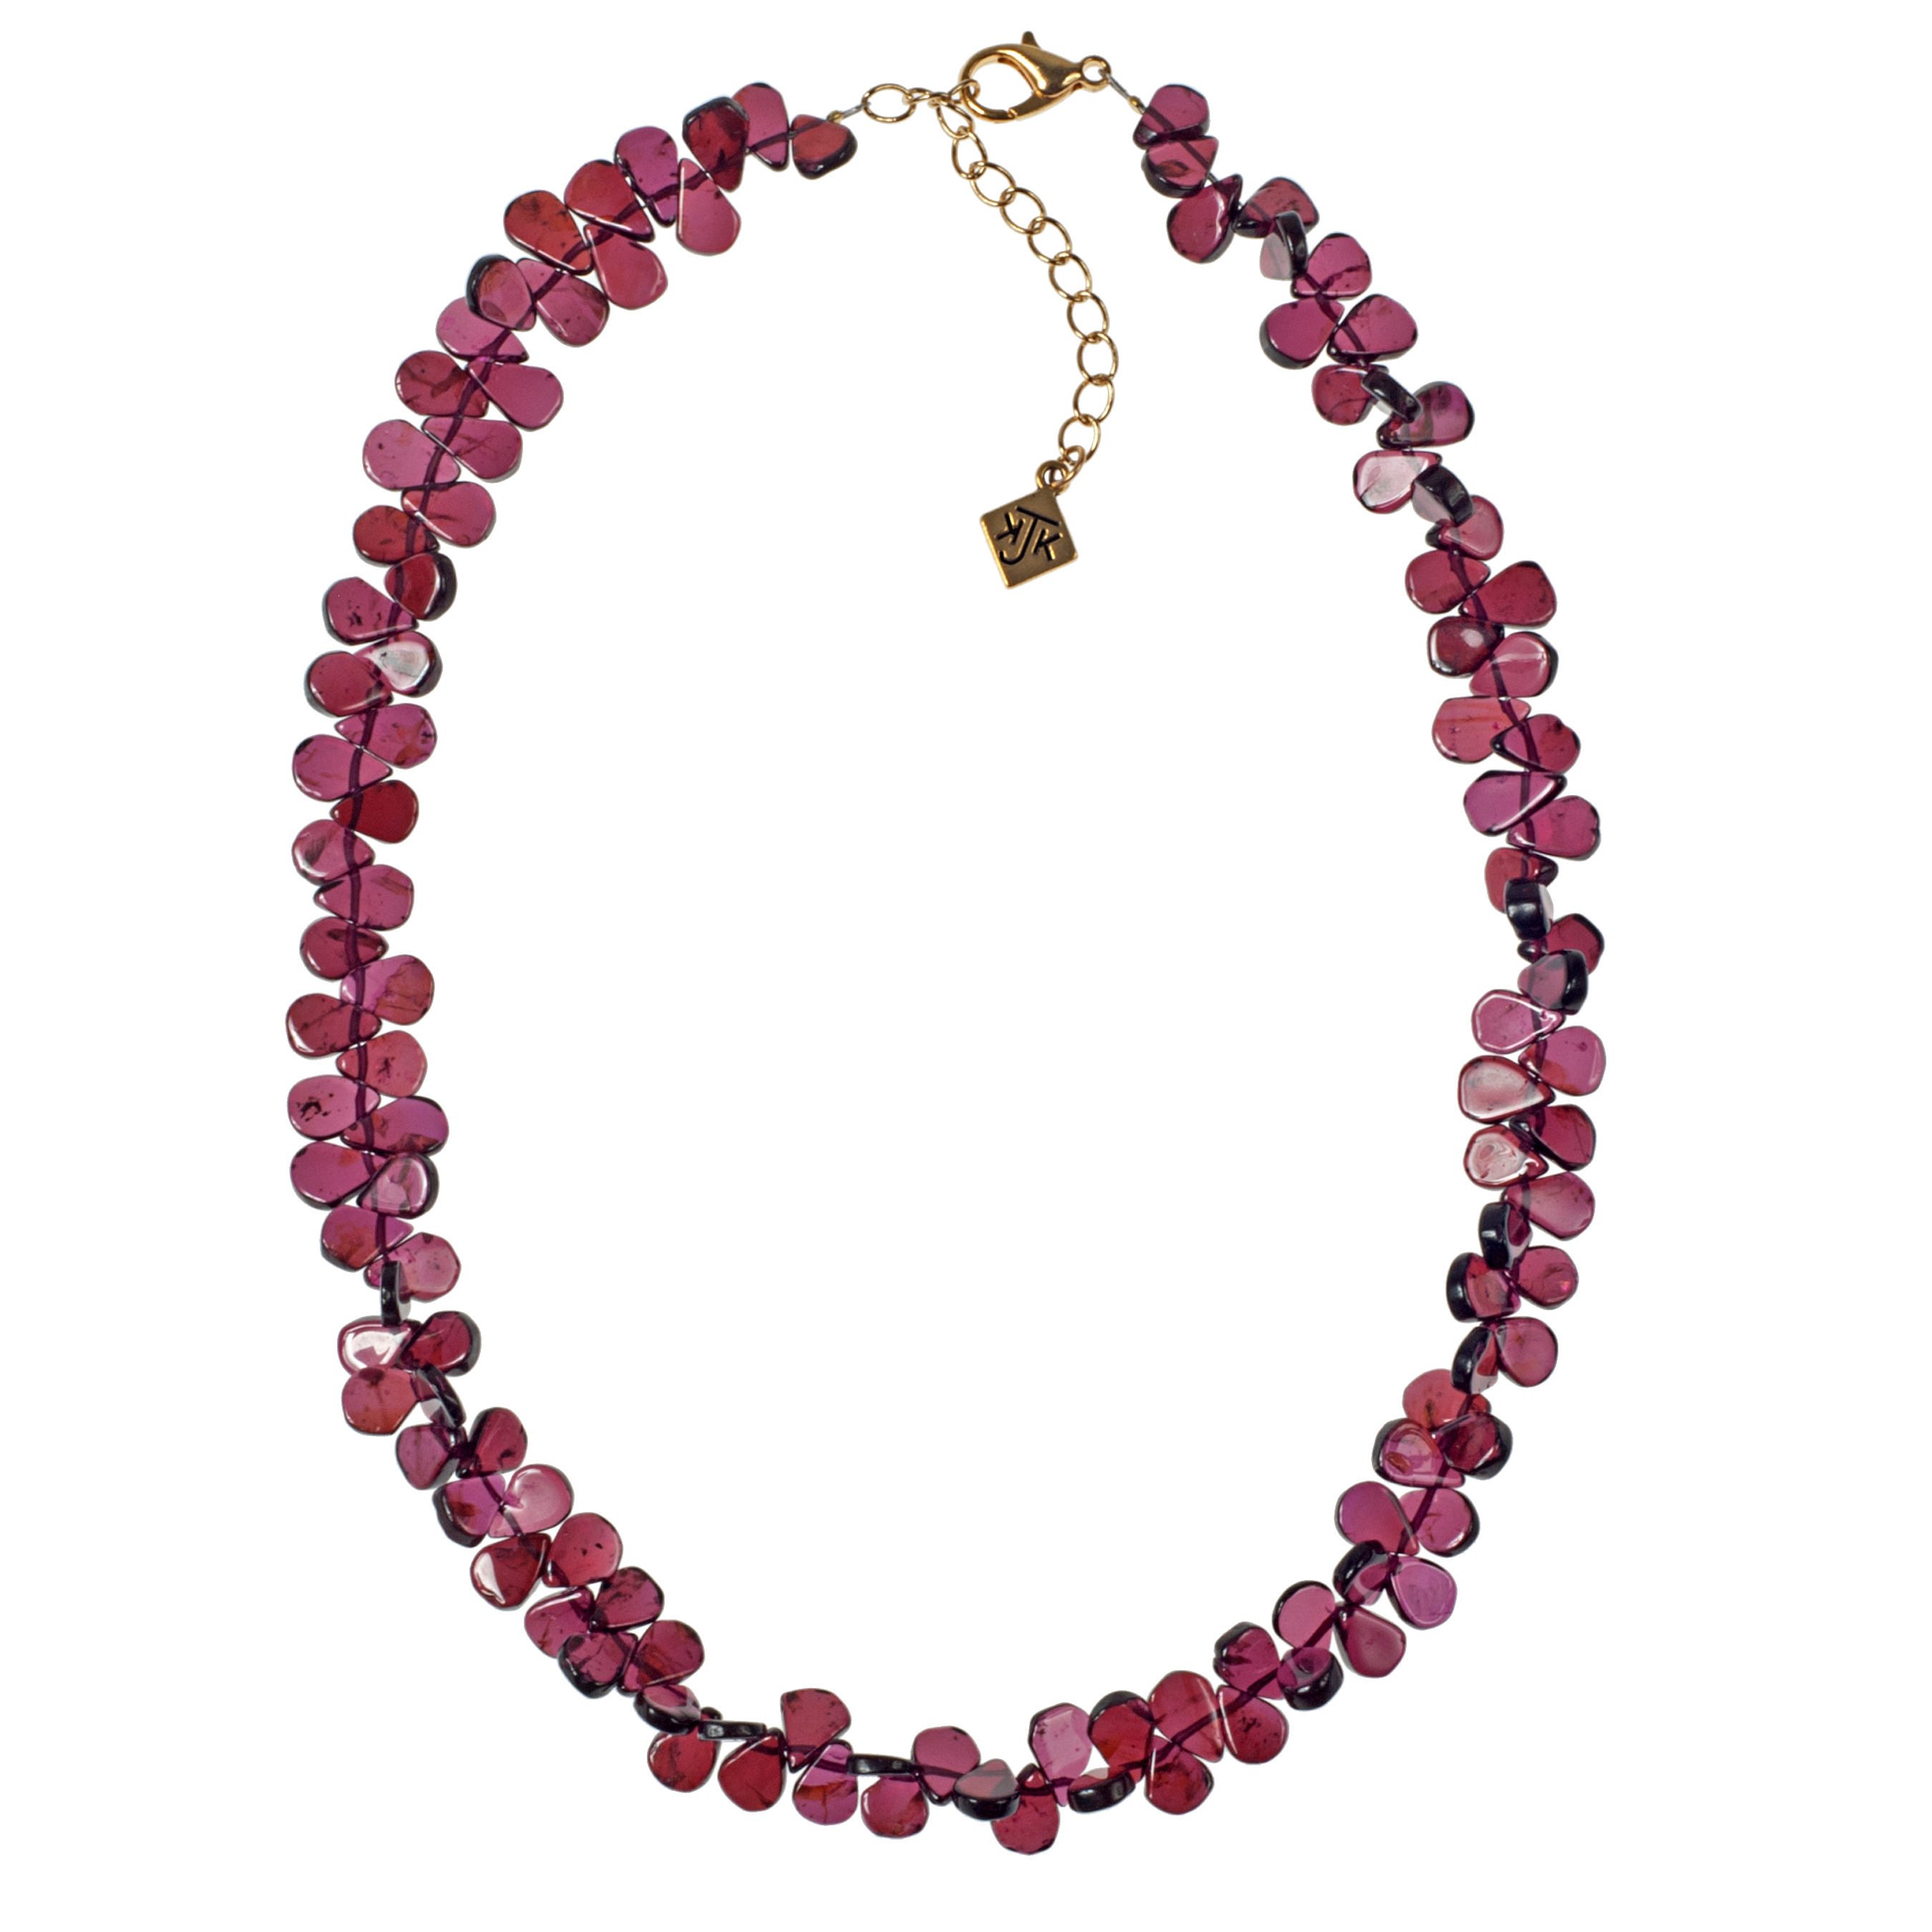 Dancing Garnet Teardrops Necklace - KJKStyle